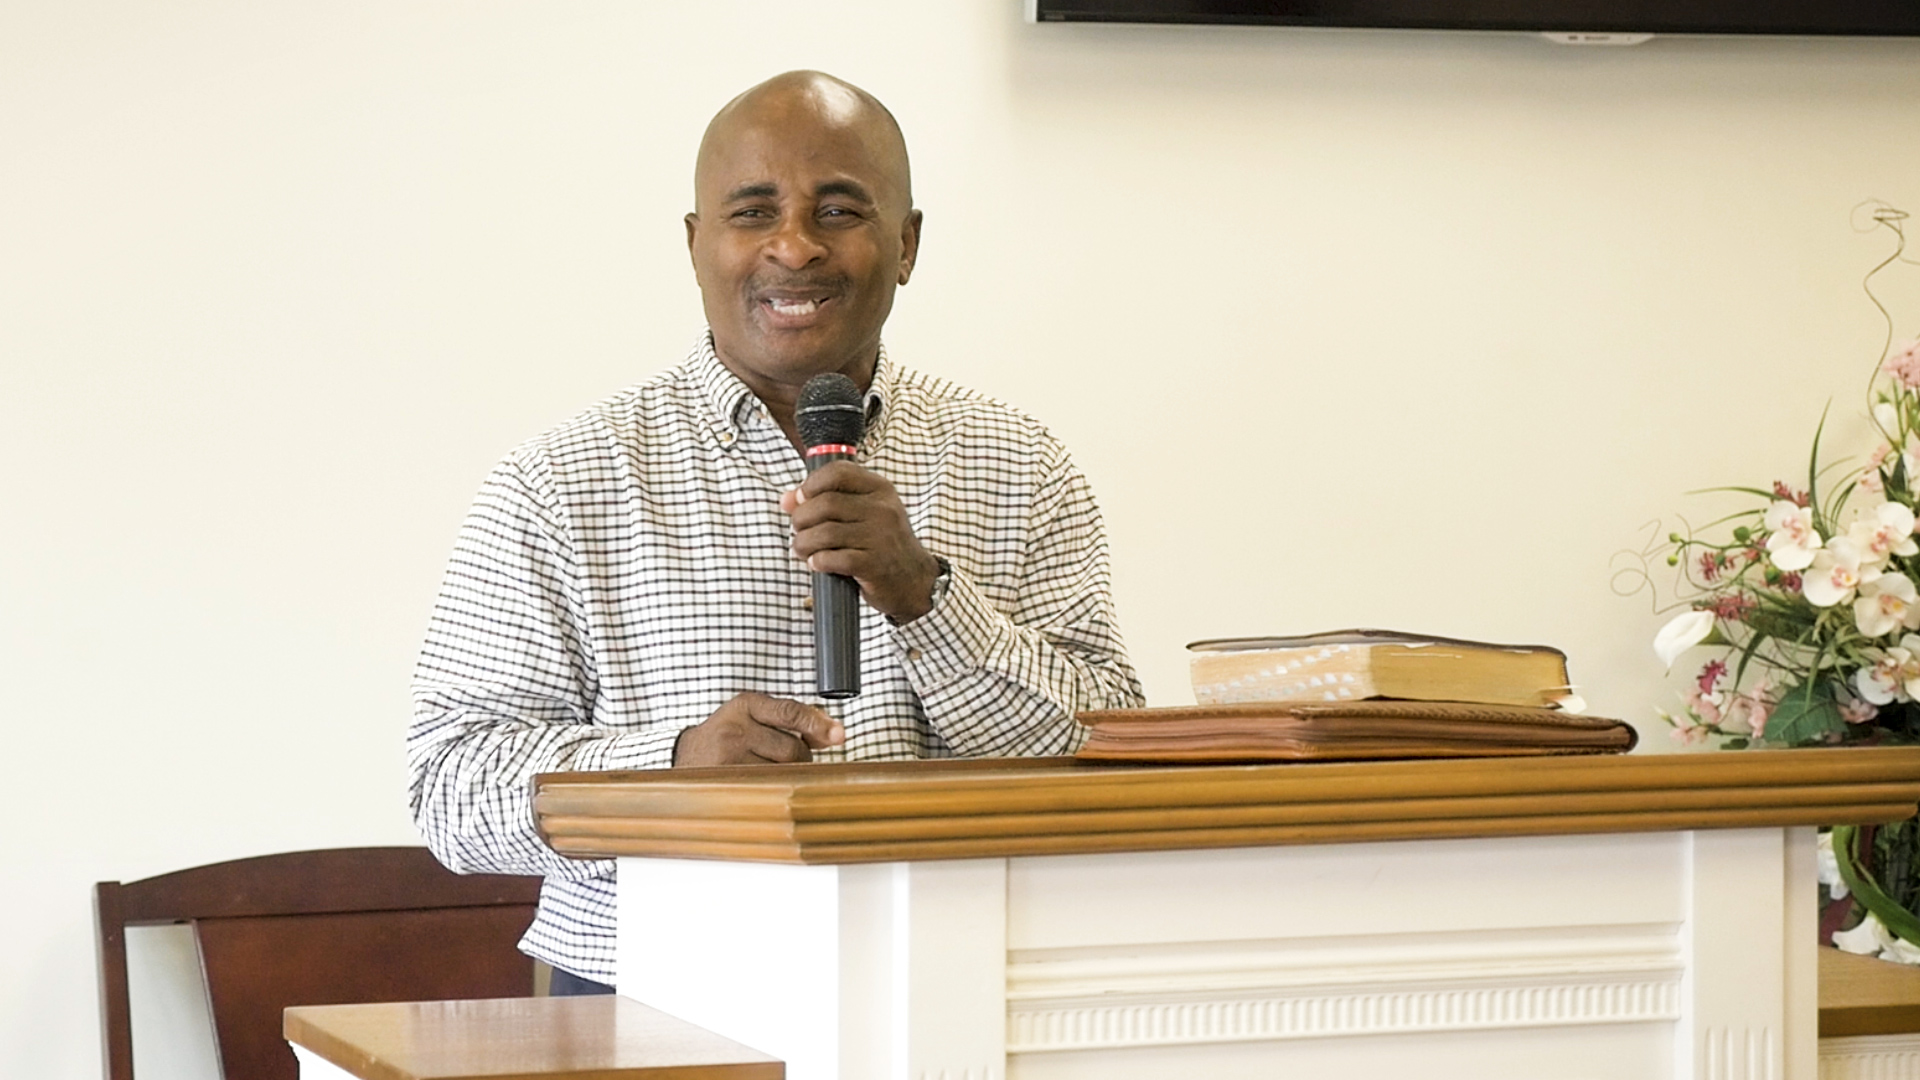 Ernest Umoh, pastor at Strong Tower Ministries